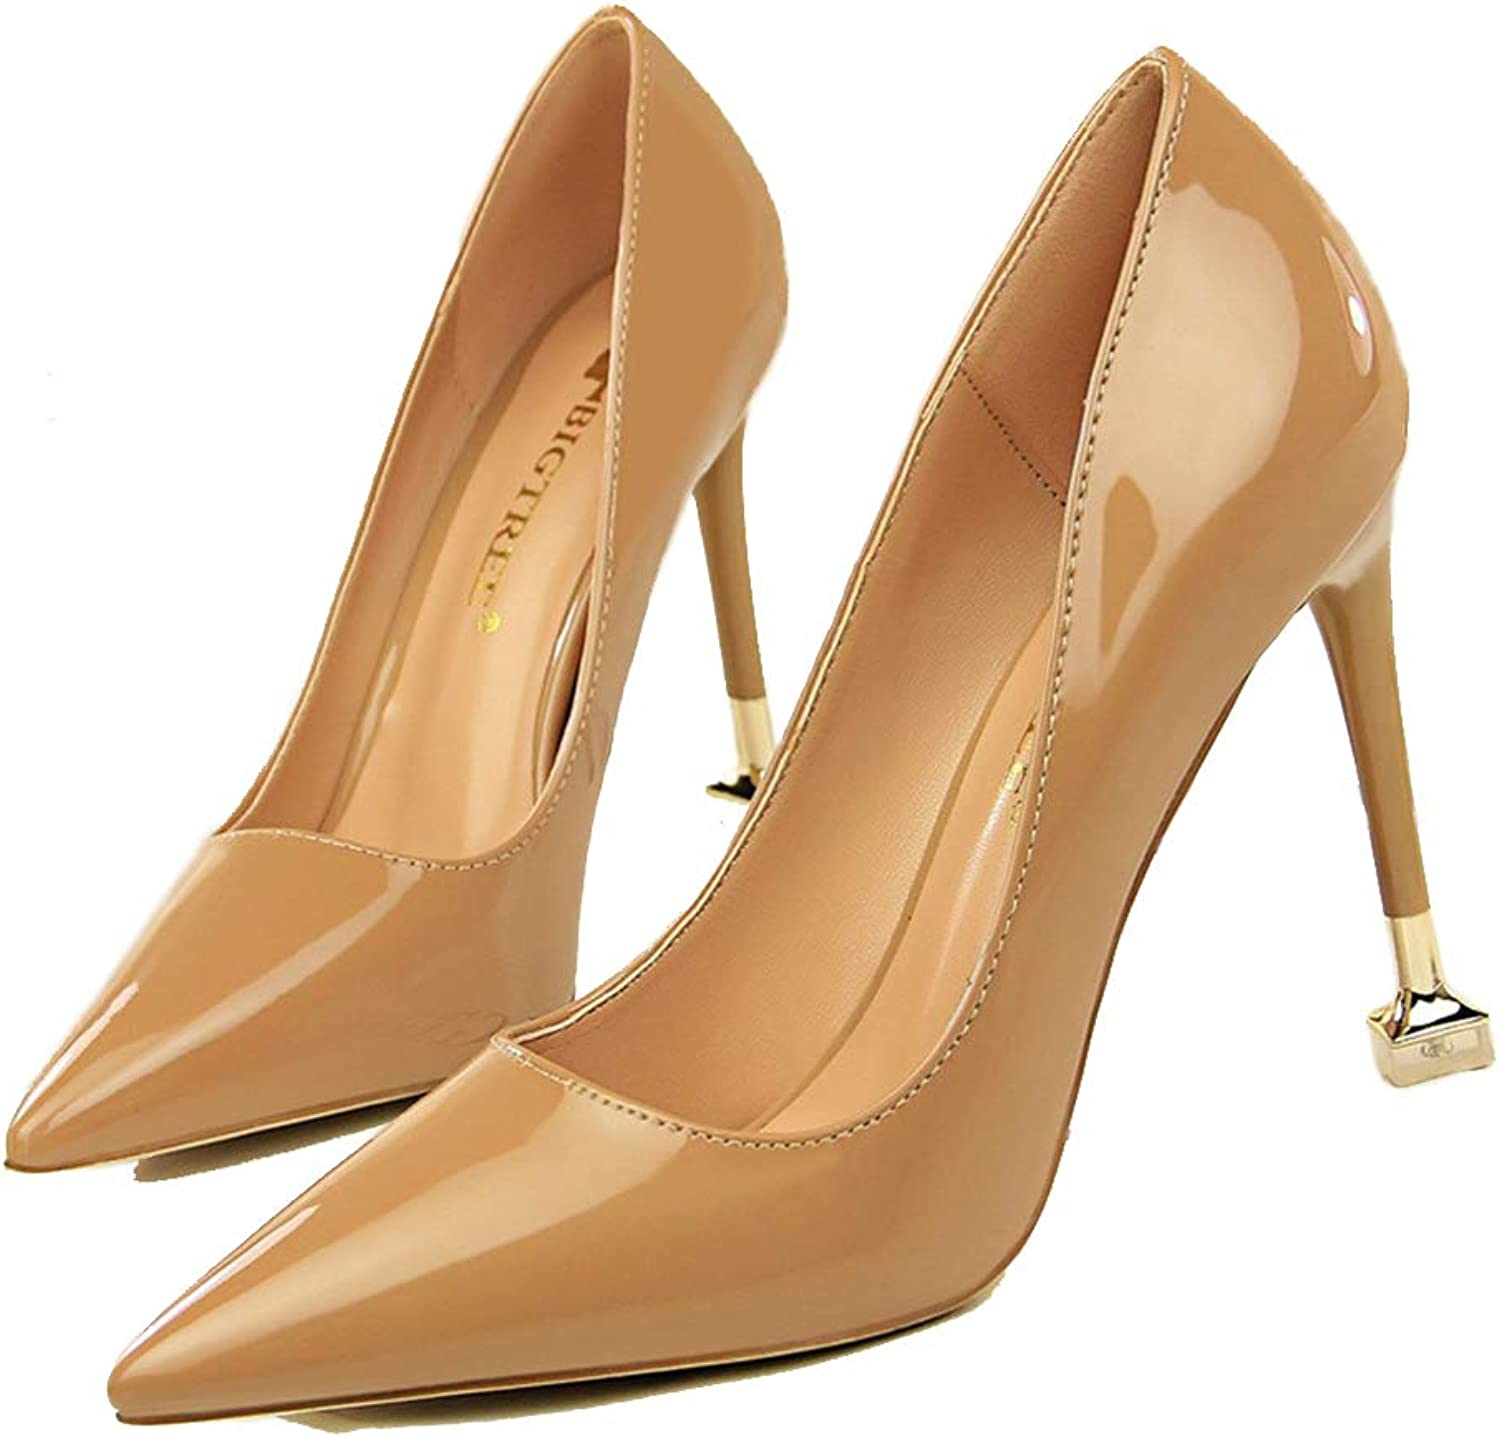 Drew Toby Women Pumps Fashion Shallow Patent Leather Slip On Pointed Office High Heels